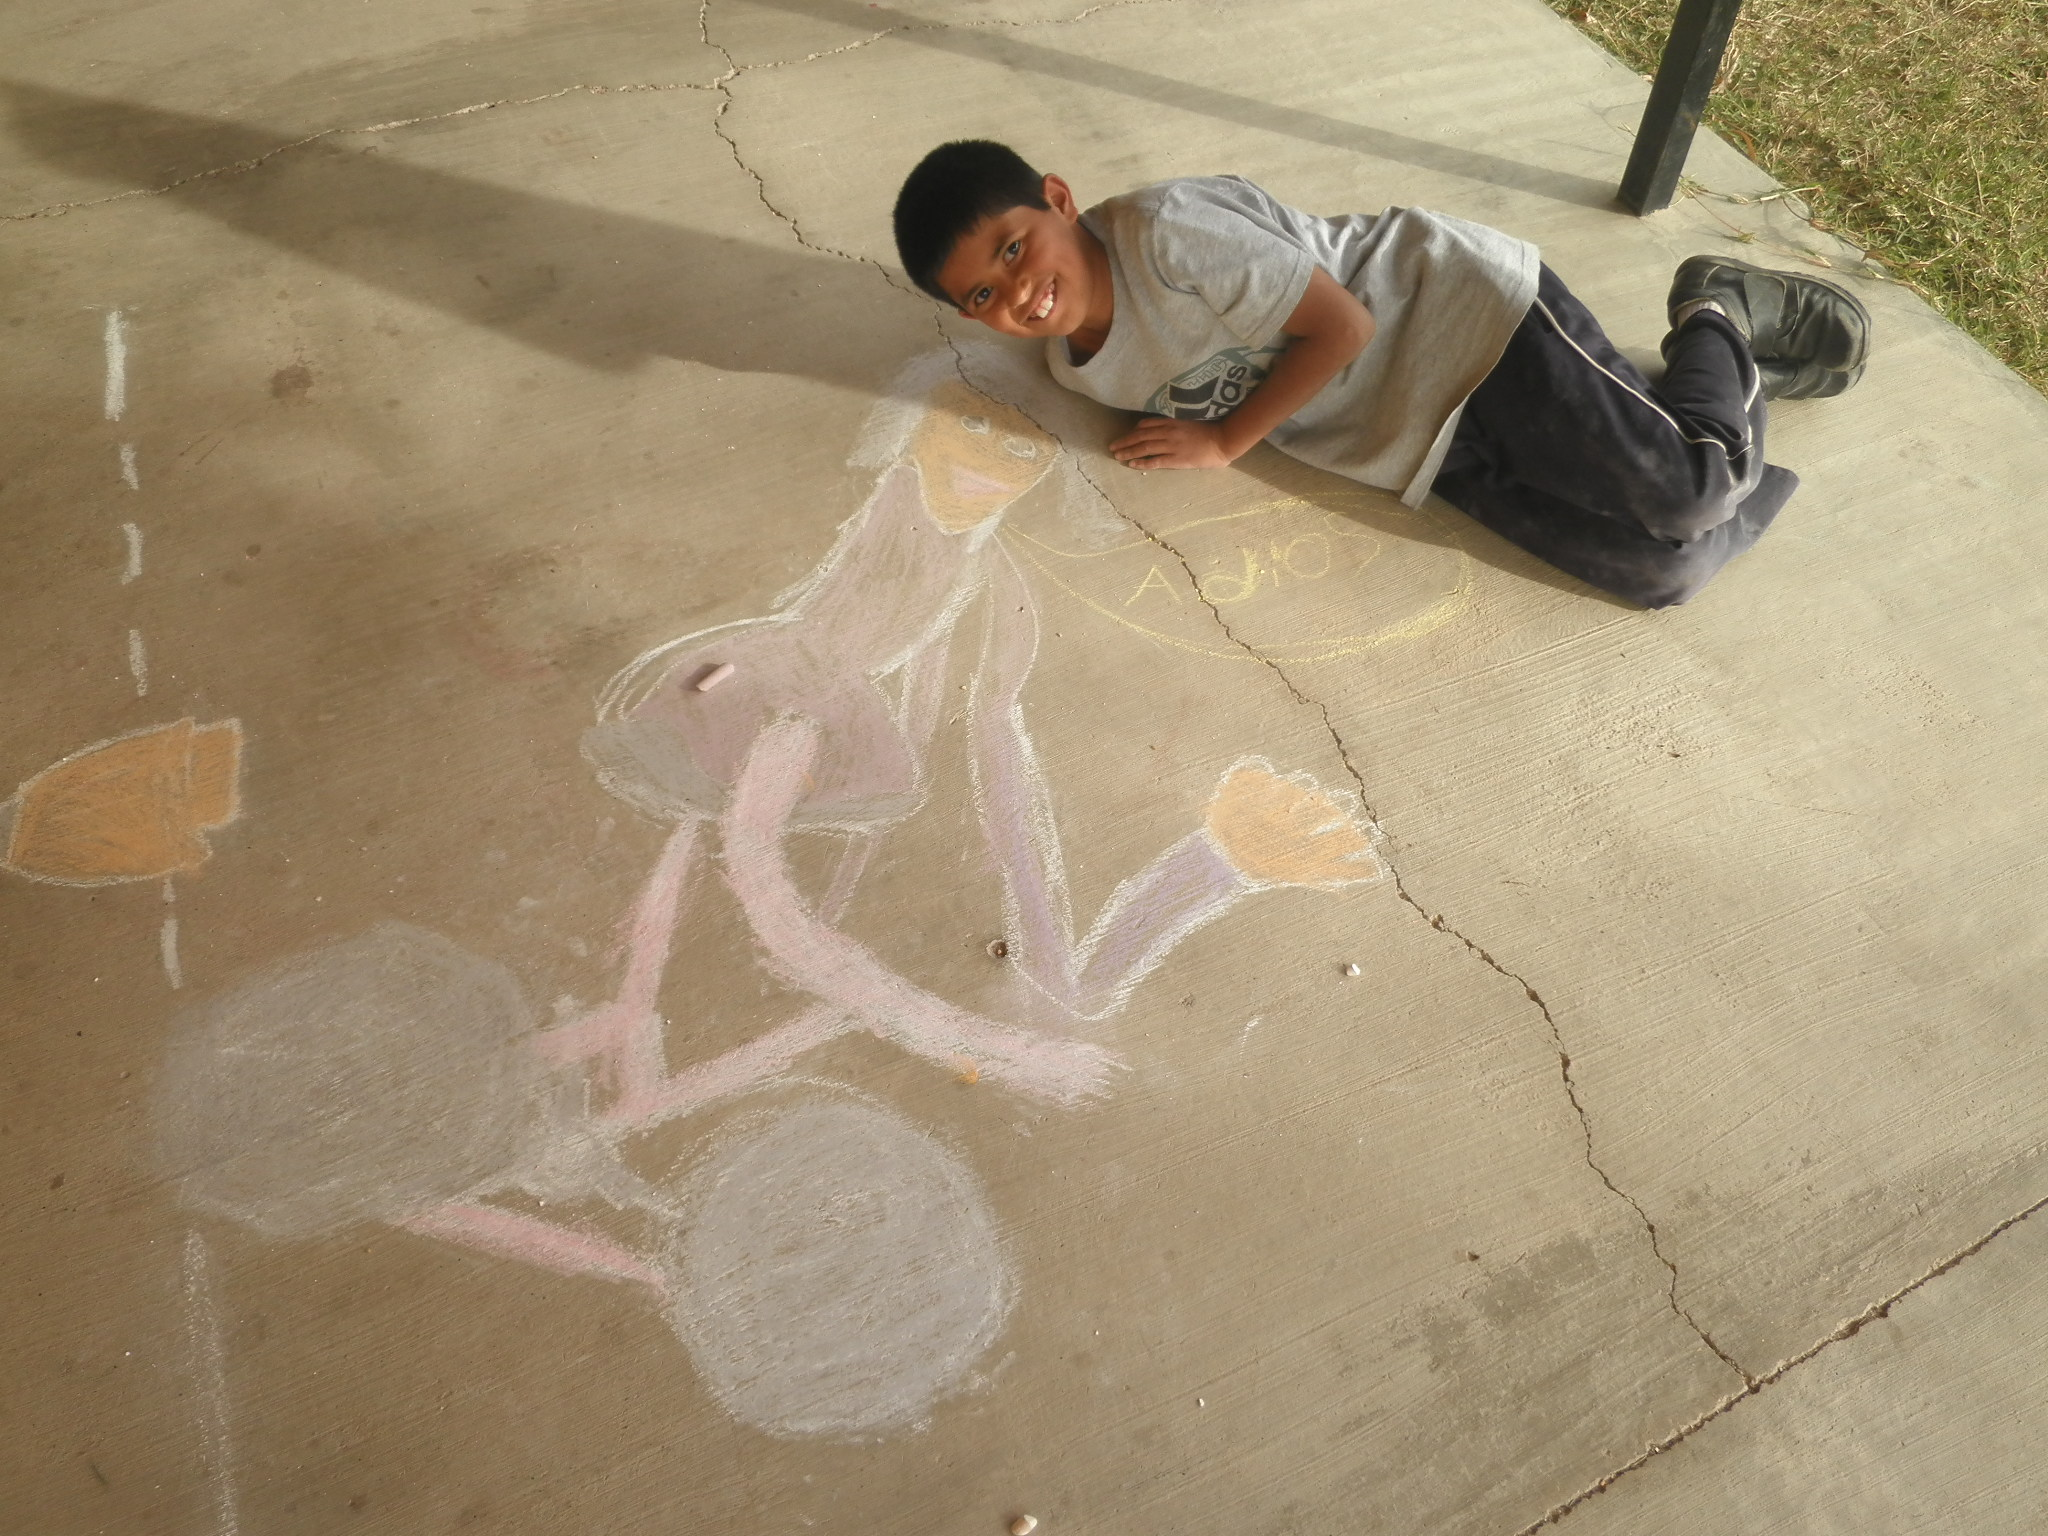 Toño shows off his chalk creation